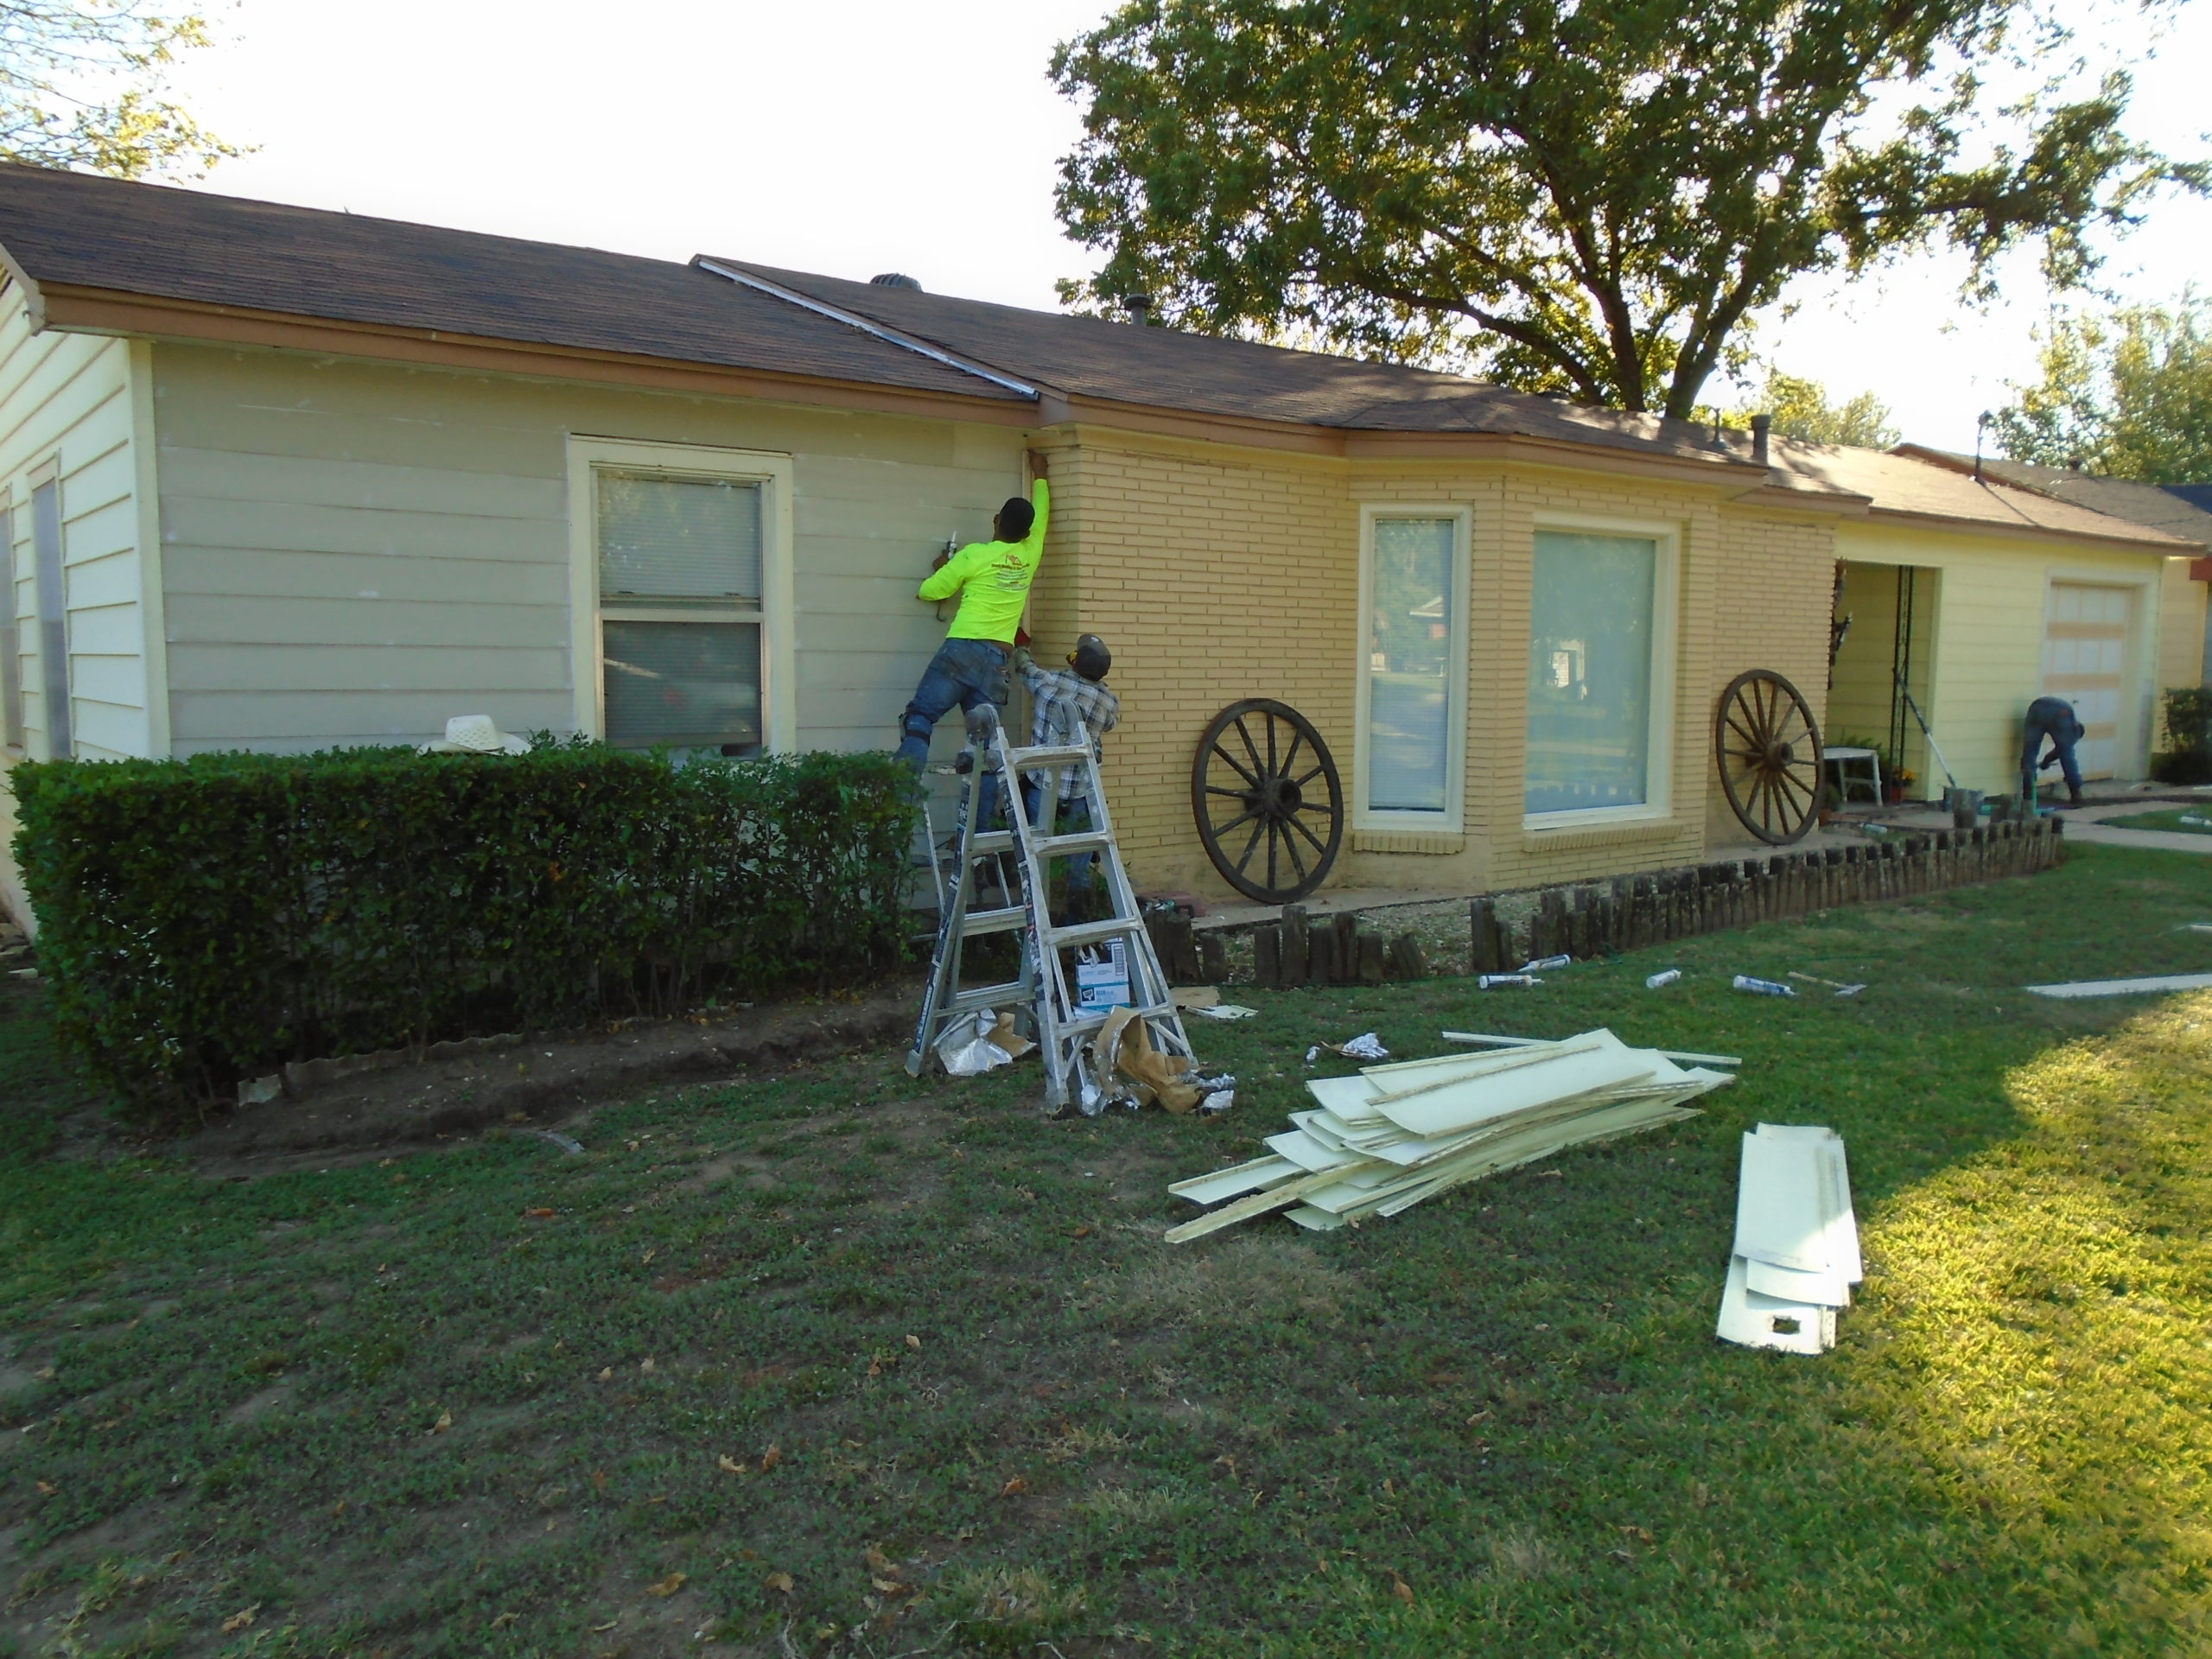 Best Roofing & Remodeling Waco, Texas - Siding & Painting